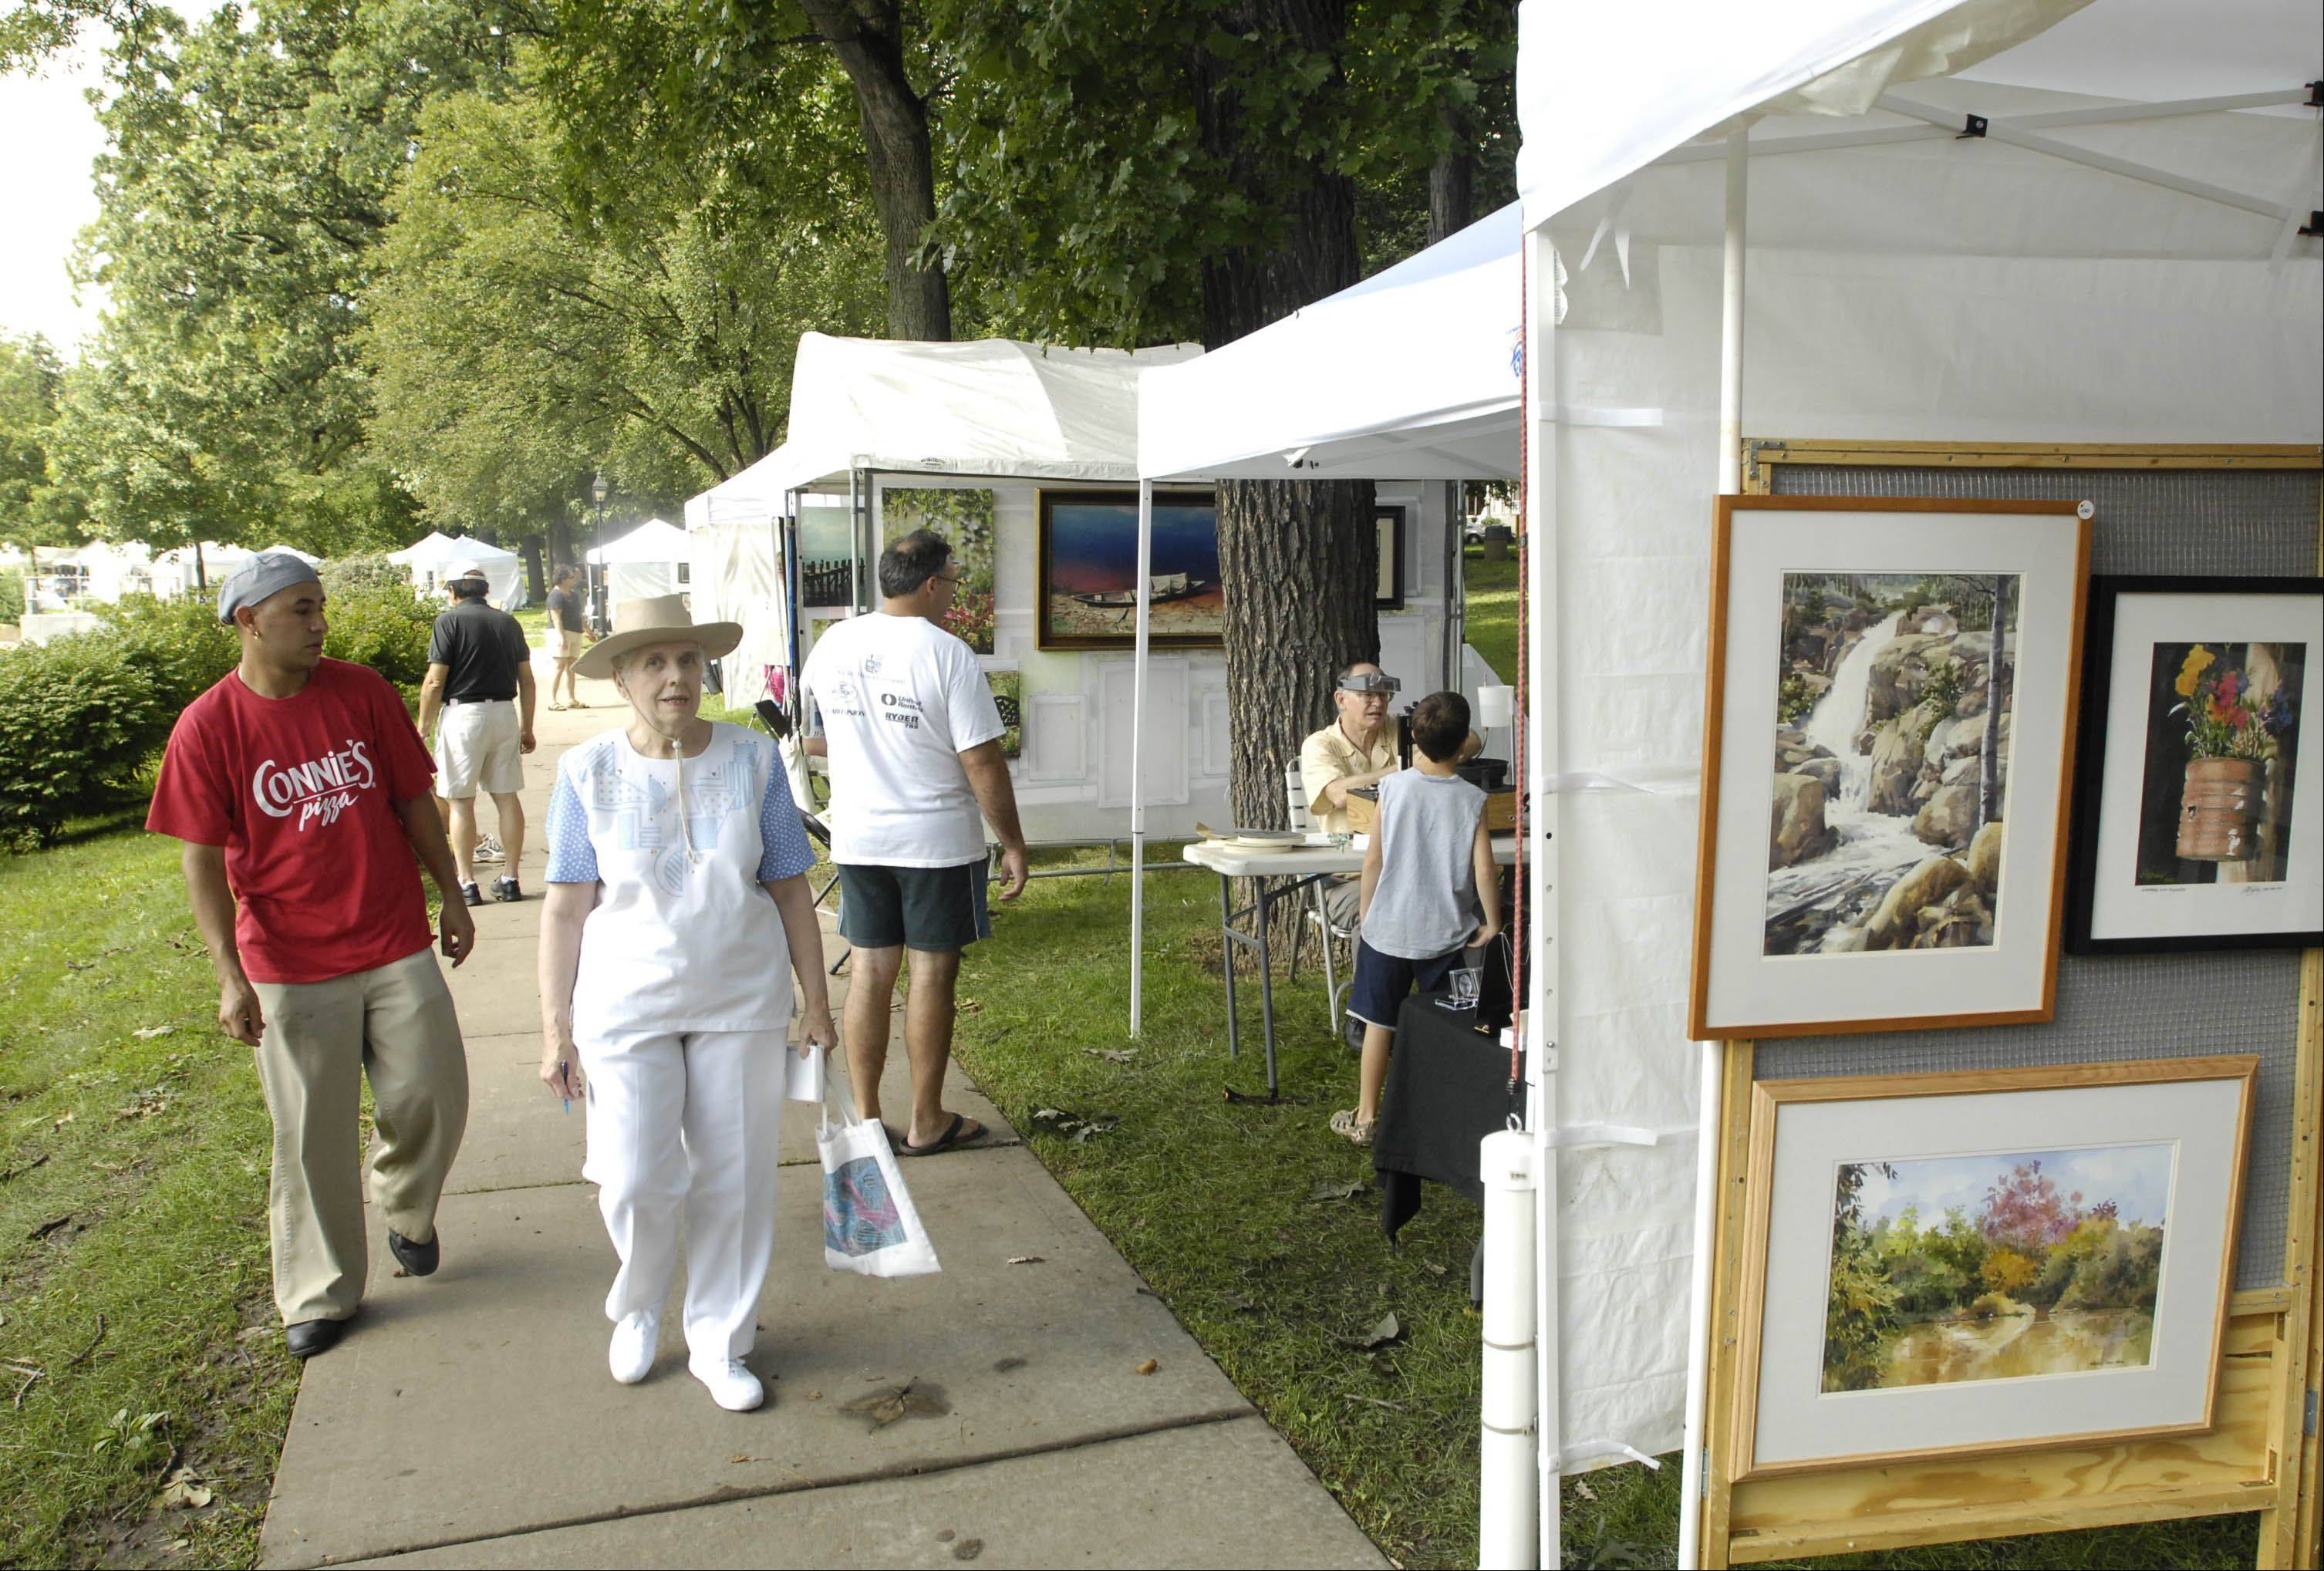 Sponsored by the Glen Ellyn Lions Club, the Glen Ellyn Festival of the Arts is now in its 43rd year.